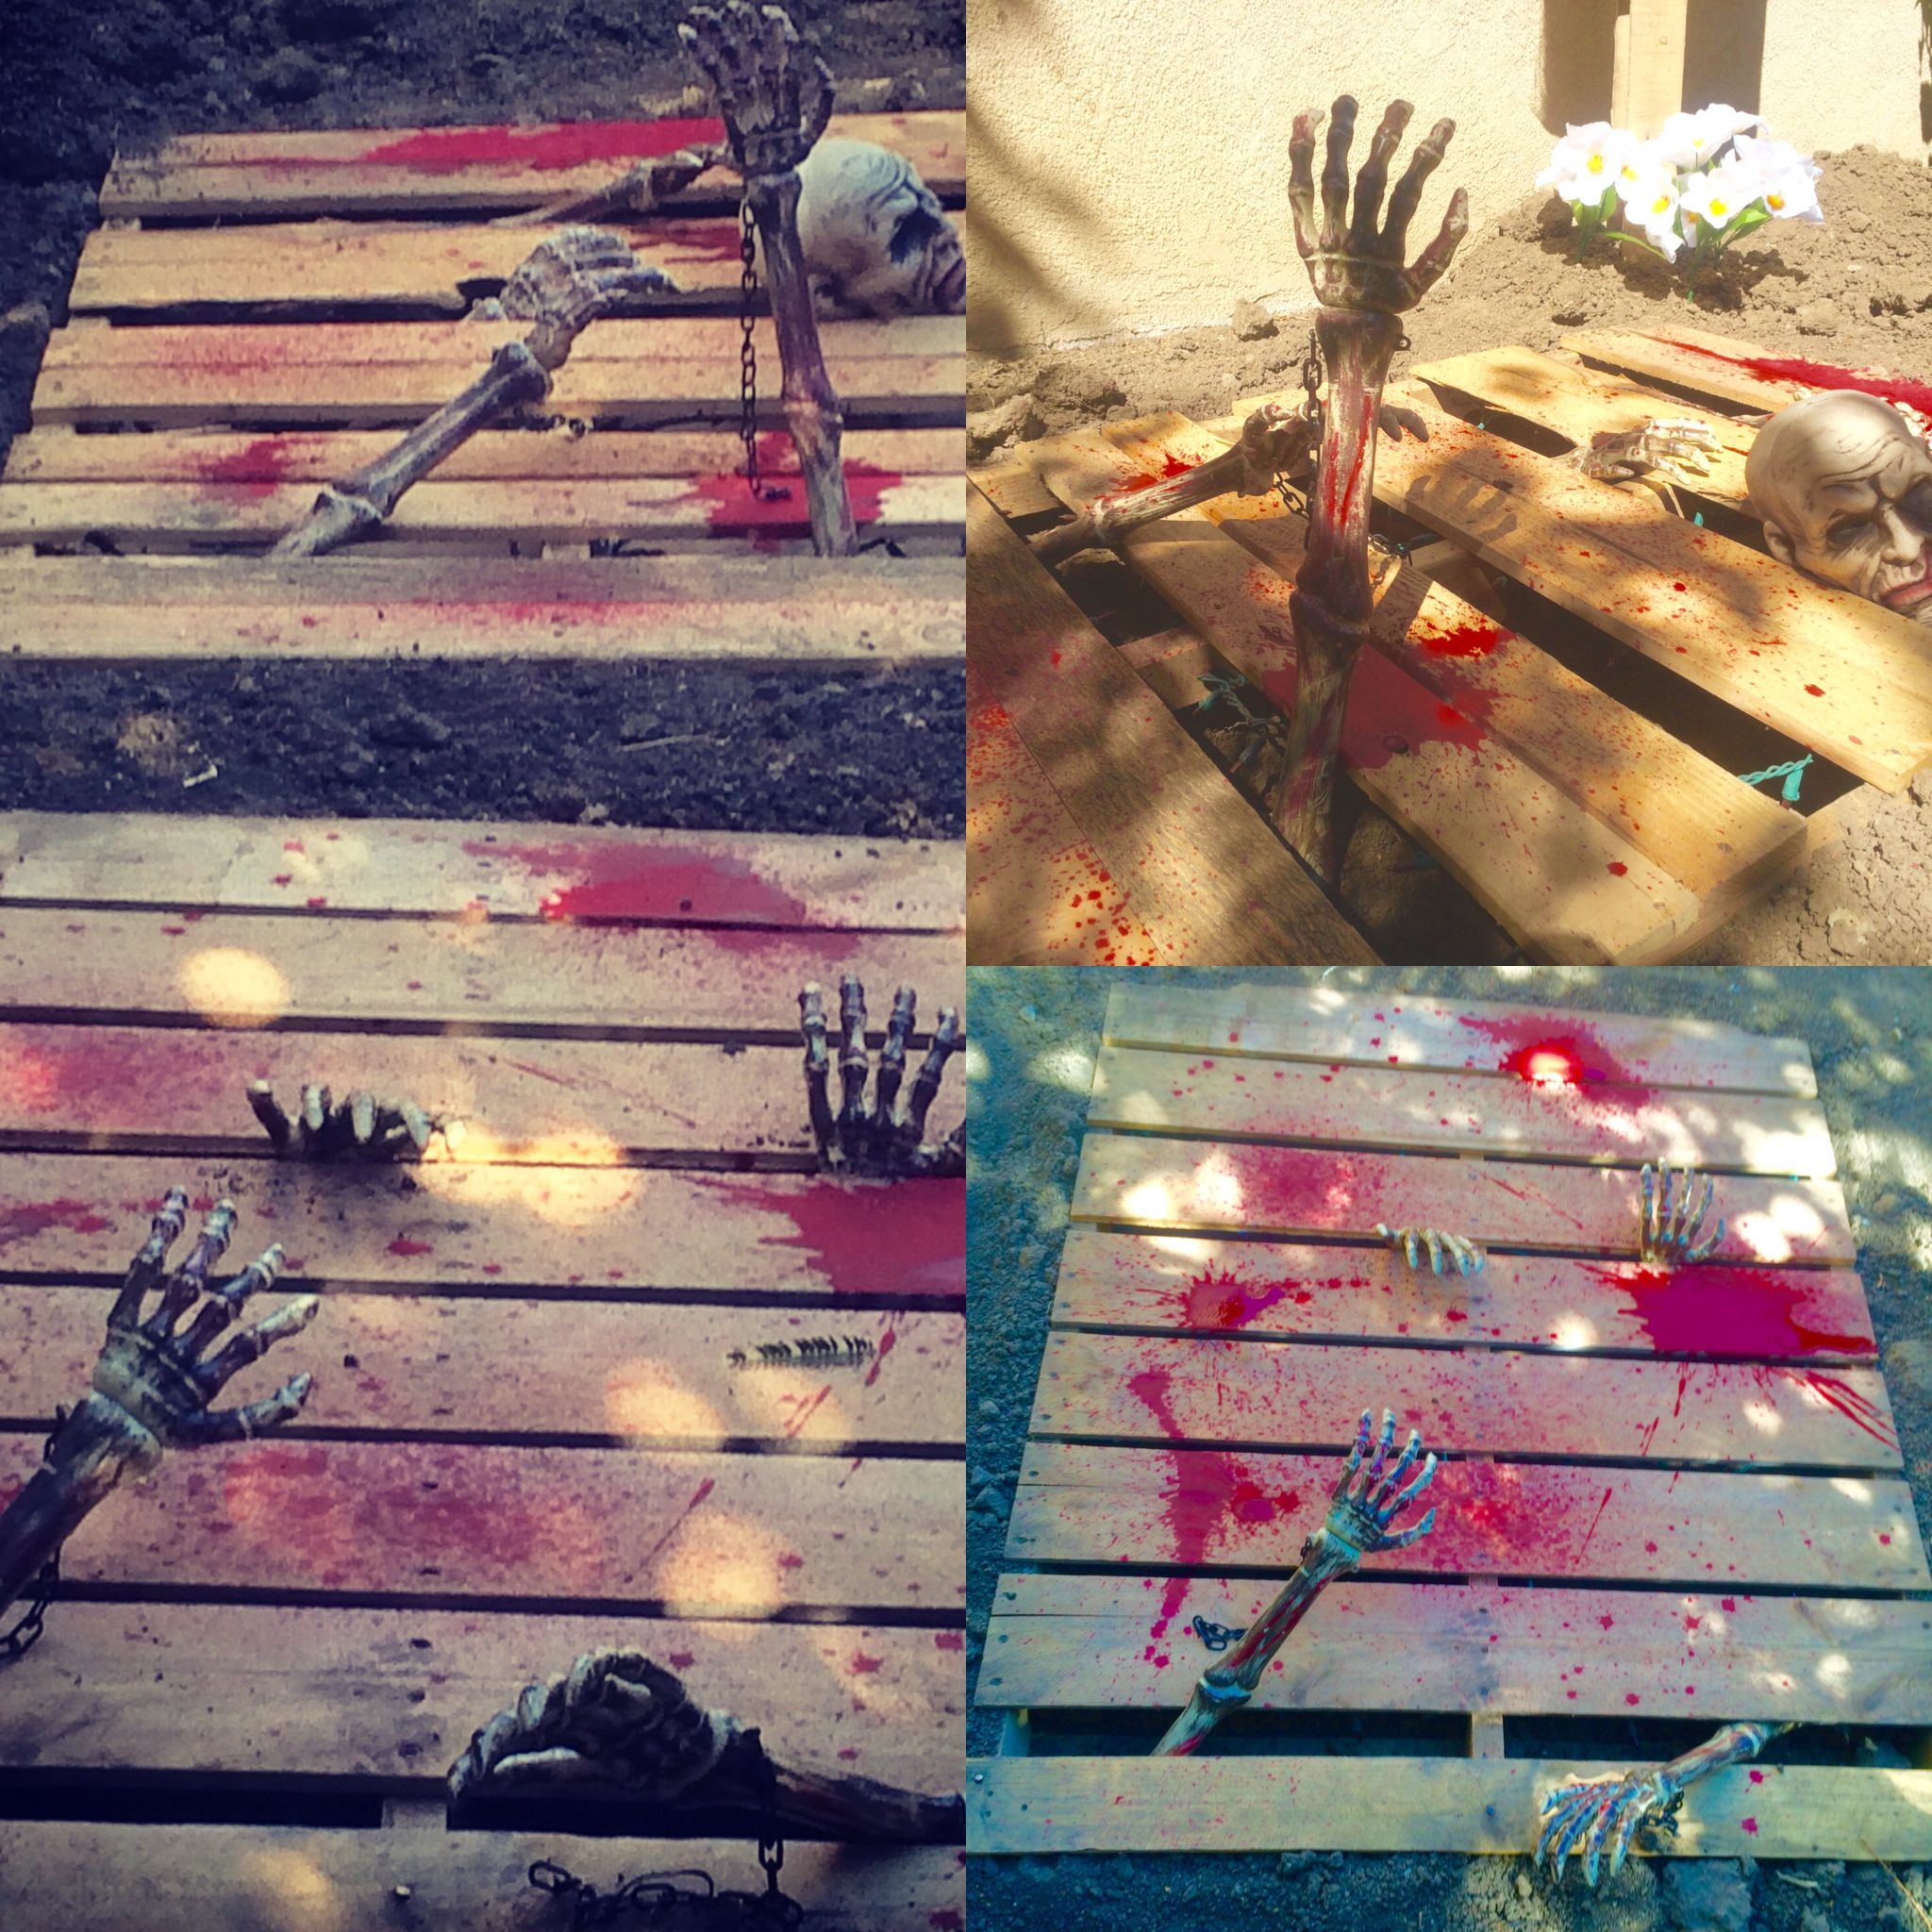 MAKE YOUR OWN ZOMBIE PITS! Dig Some Dirt, Staple Red Xmas